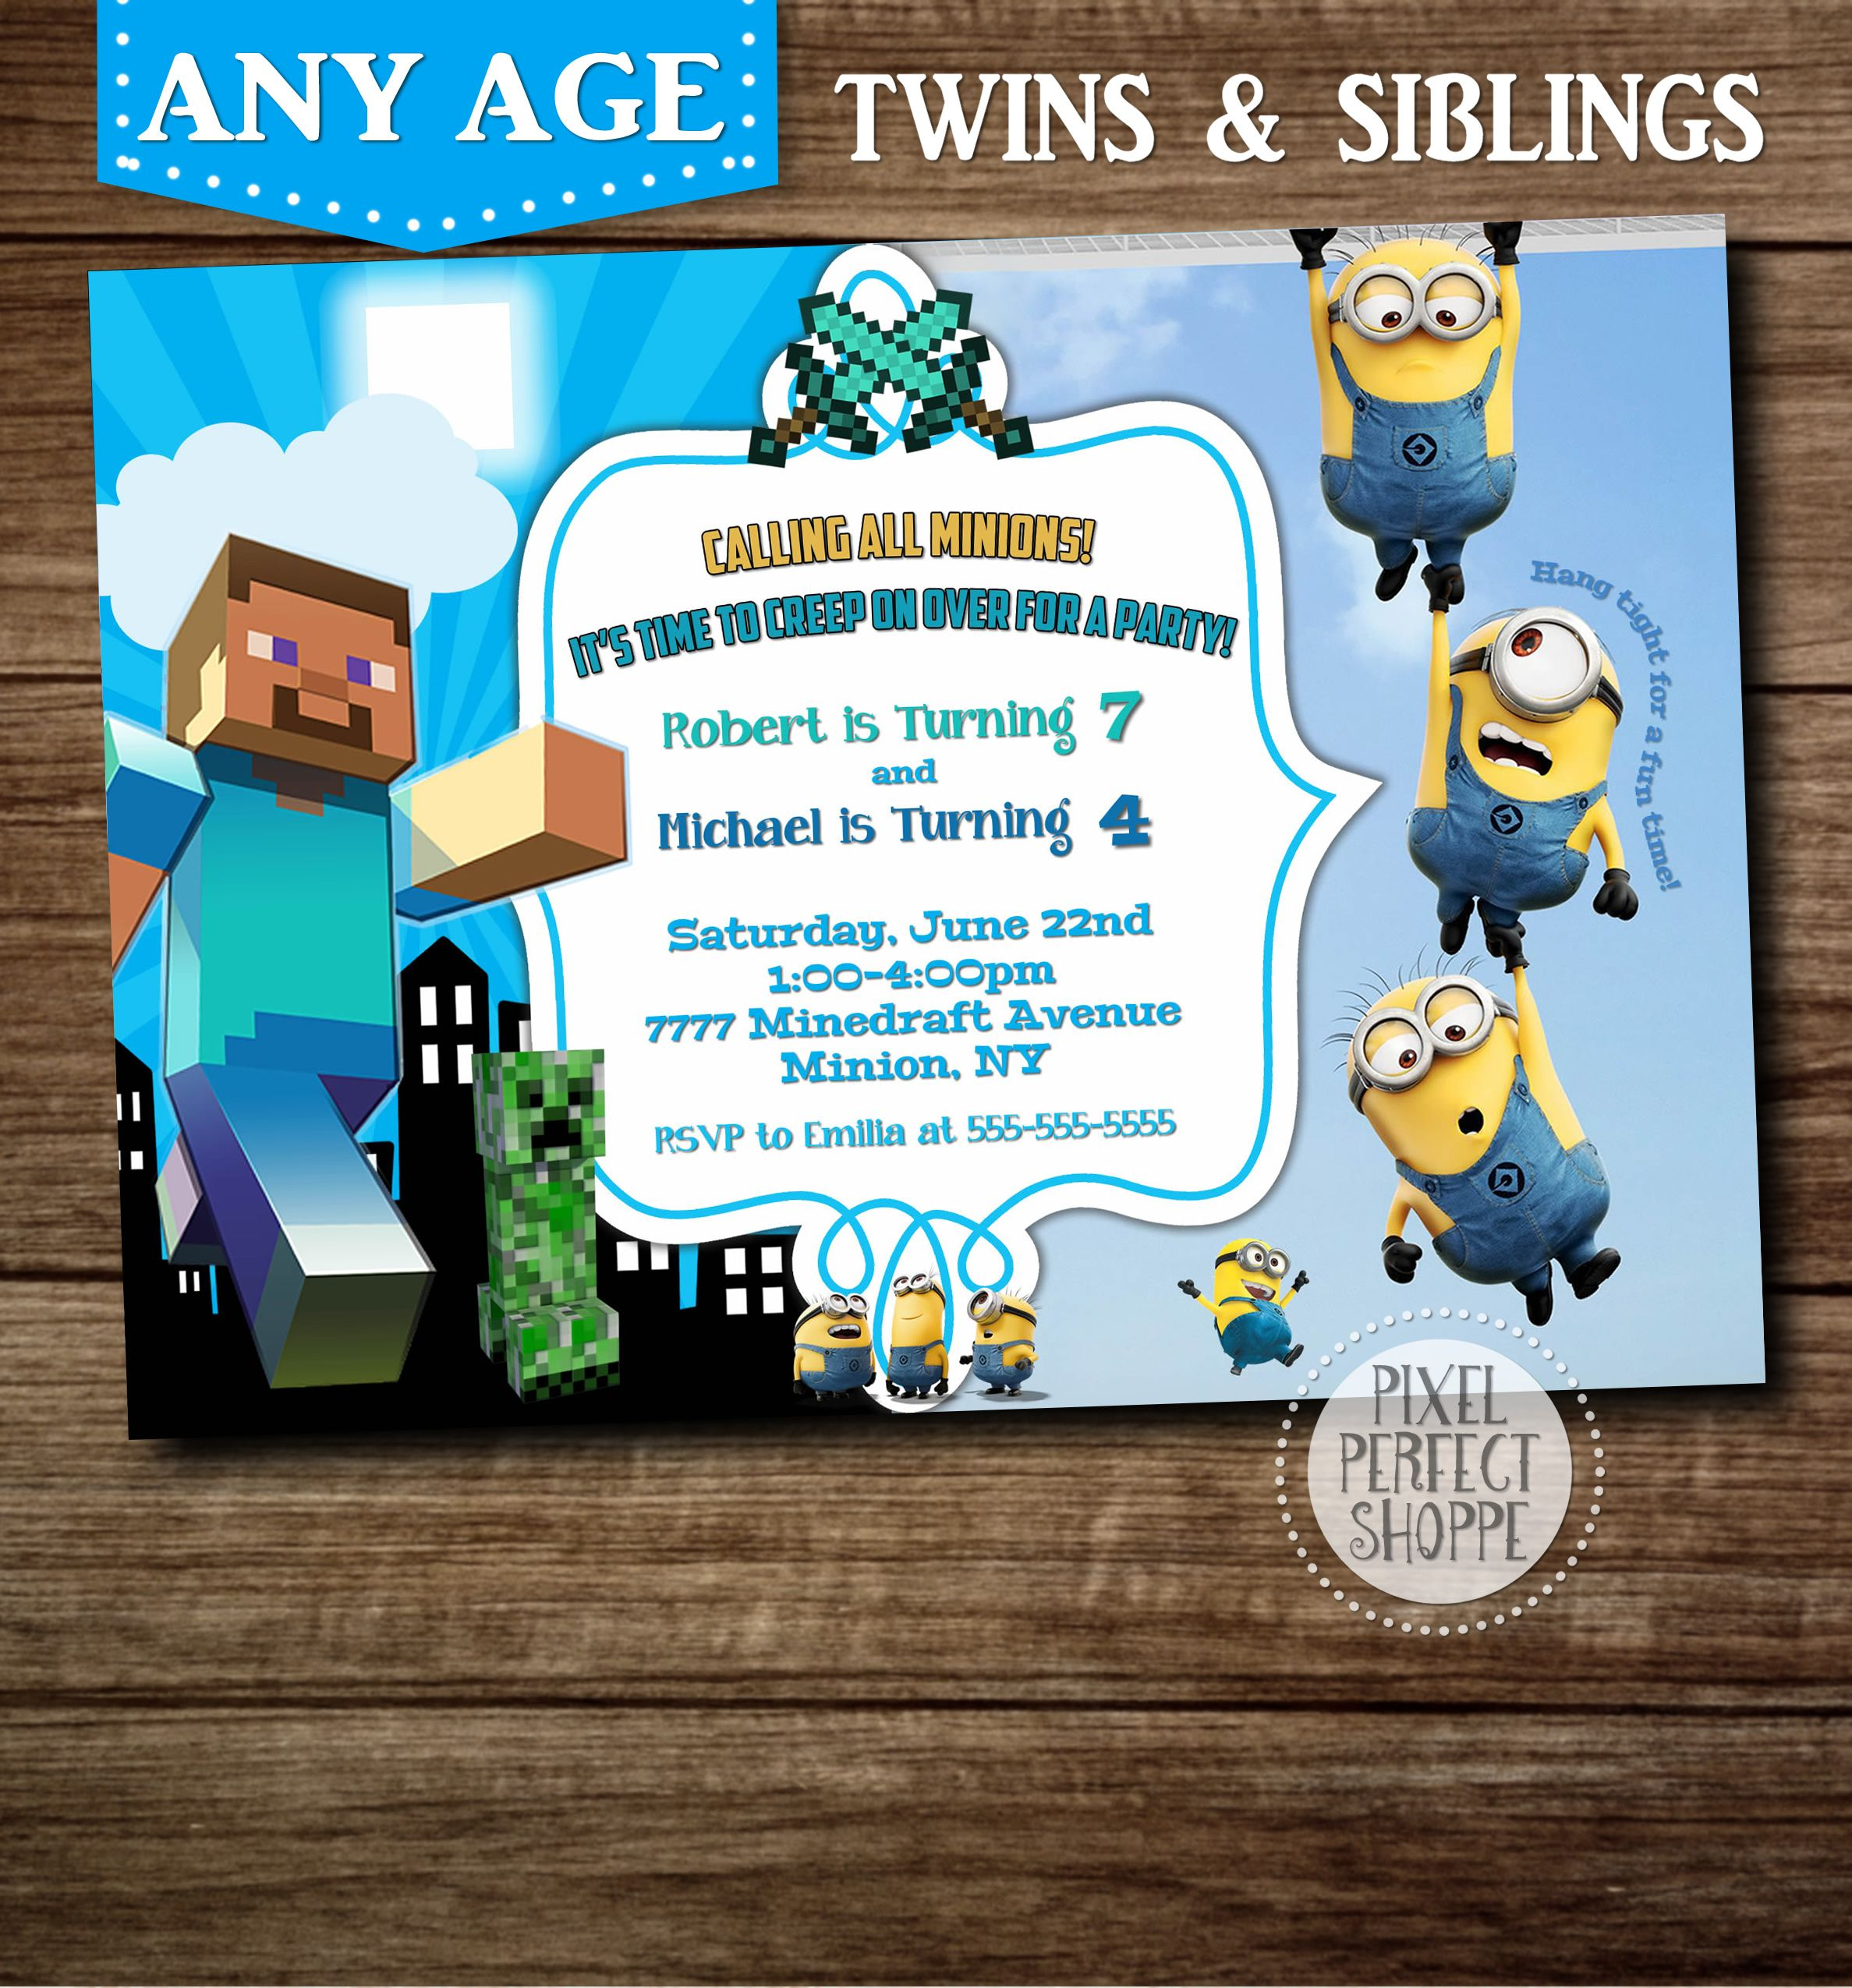 Minecraft And Minion Birthday Invitation For Boys Girls Siblings Twins Or Those Wanting Two Themes On One Card